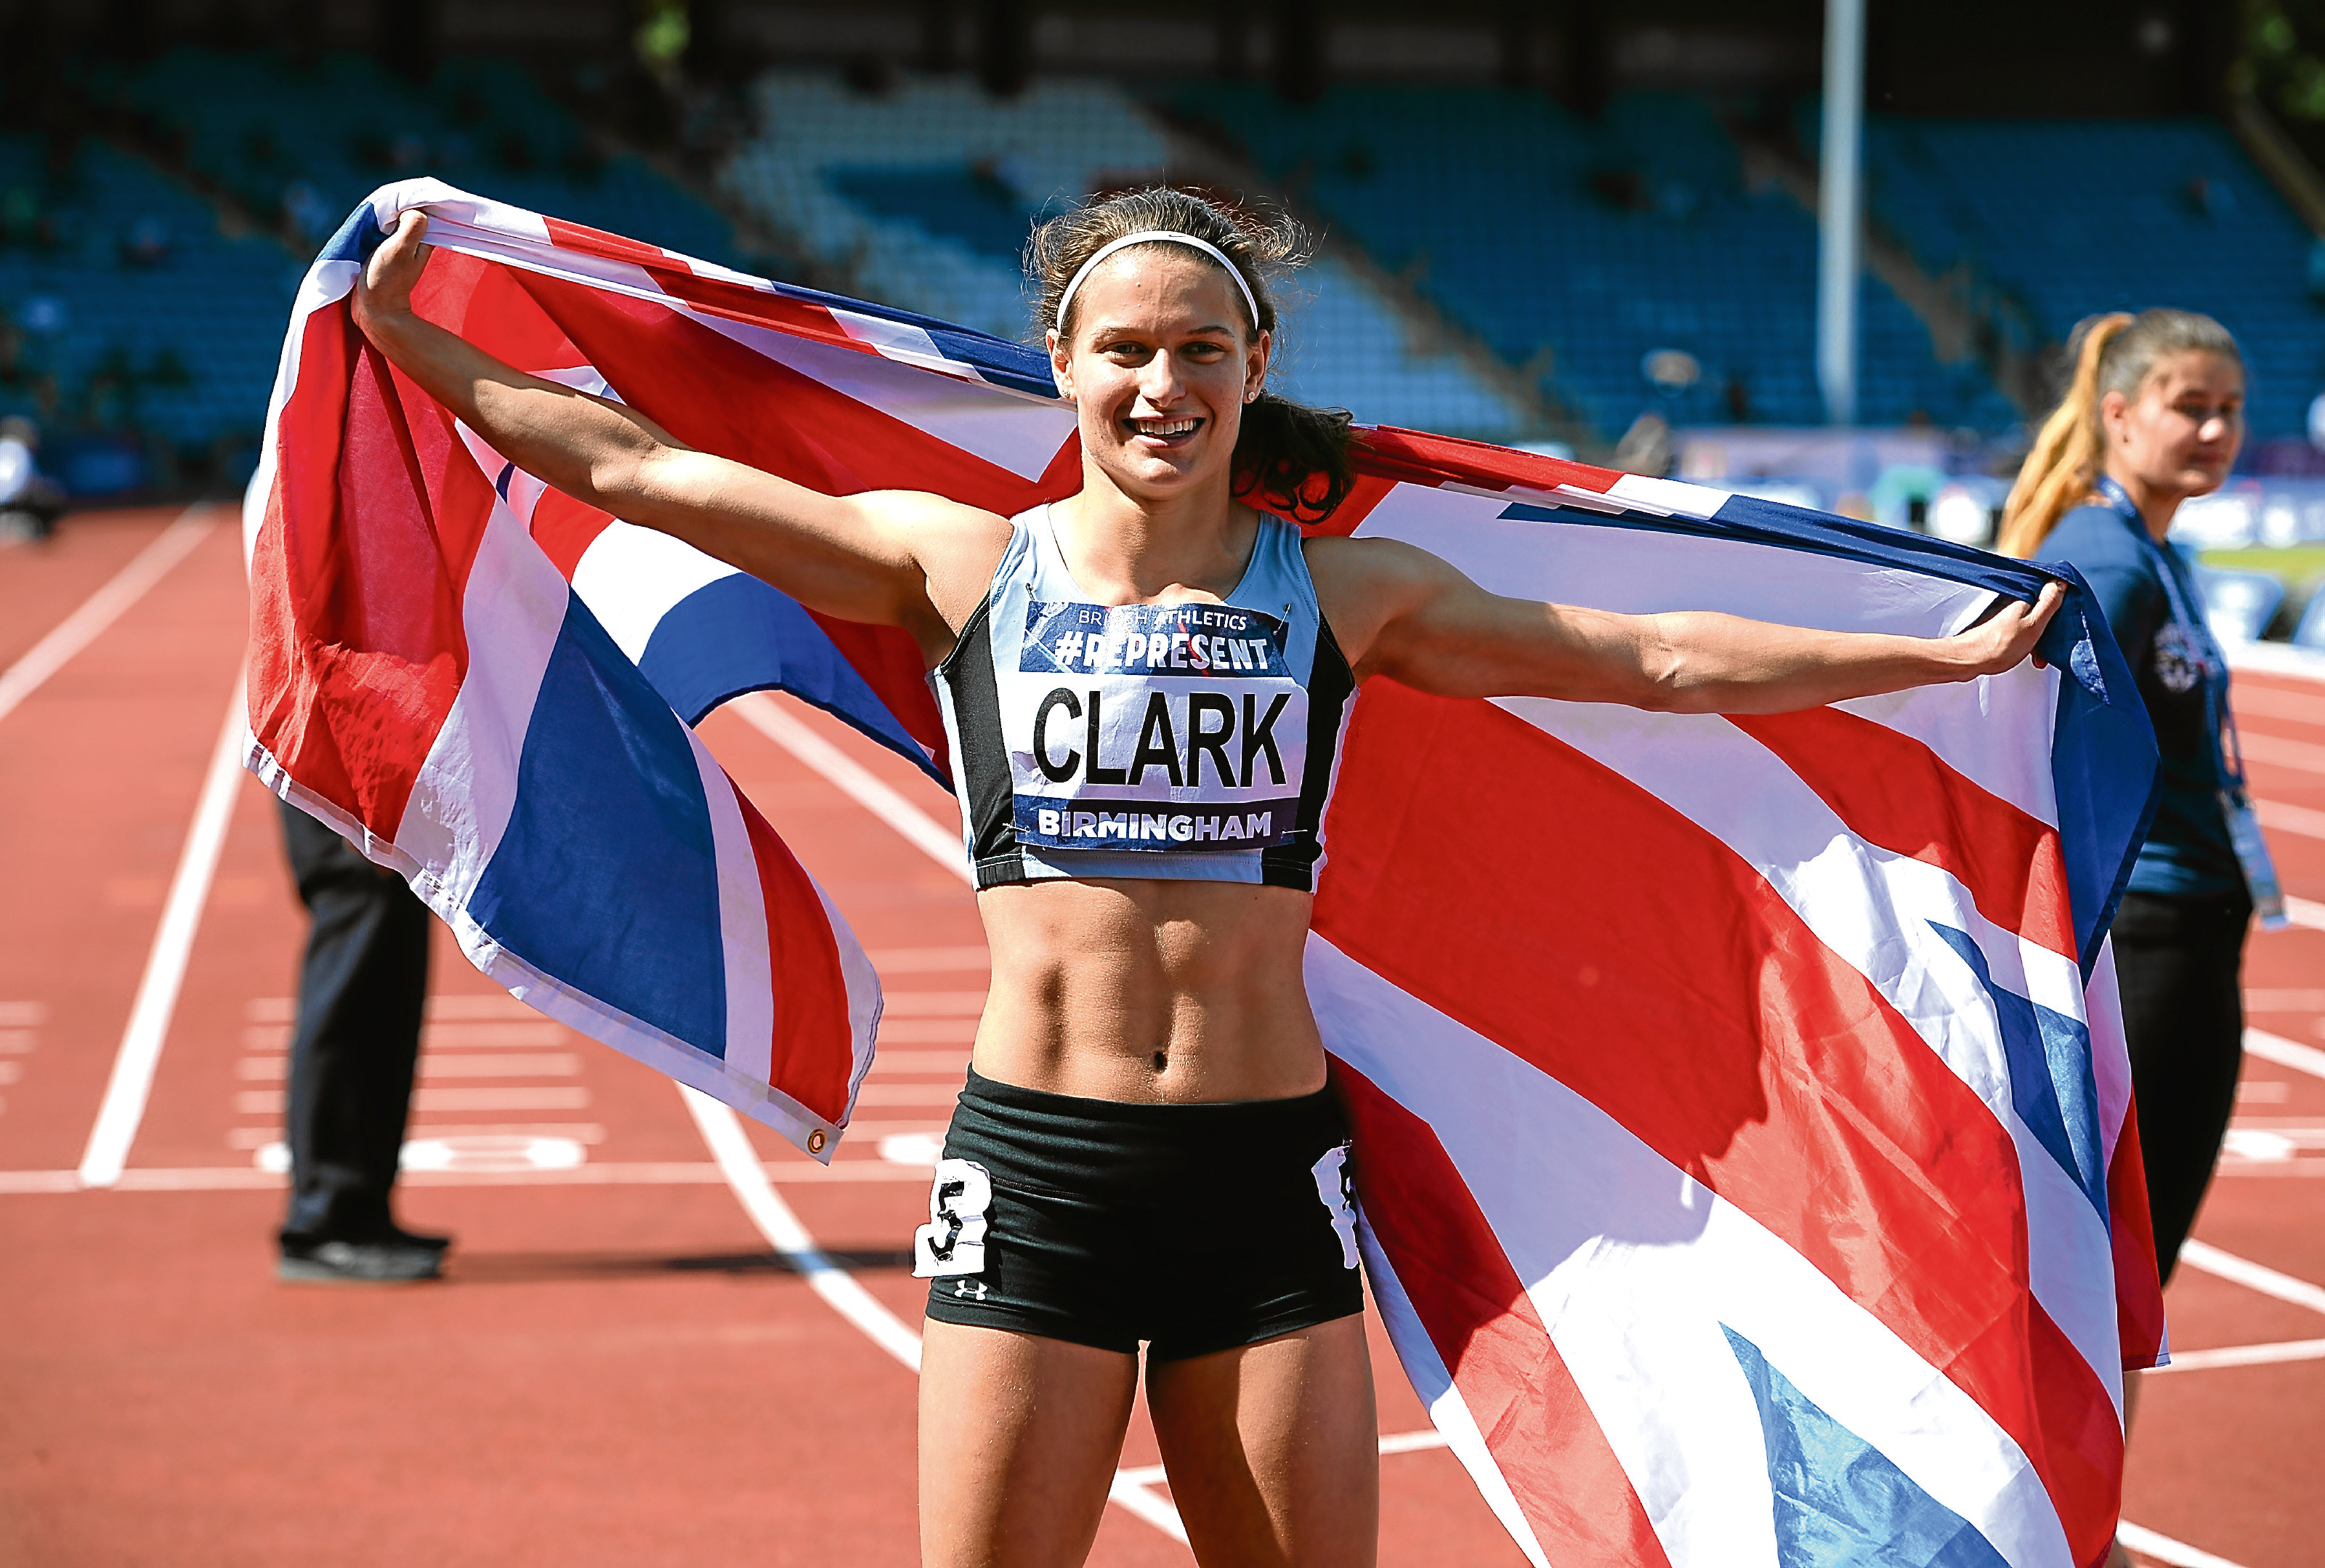 Zoey Clarke celebrates winning the Womens 400m Final during the British Athletics World Championships Team Trials at Birmingham Alexander Stadium in Birmingham, England.